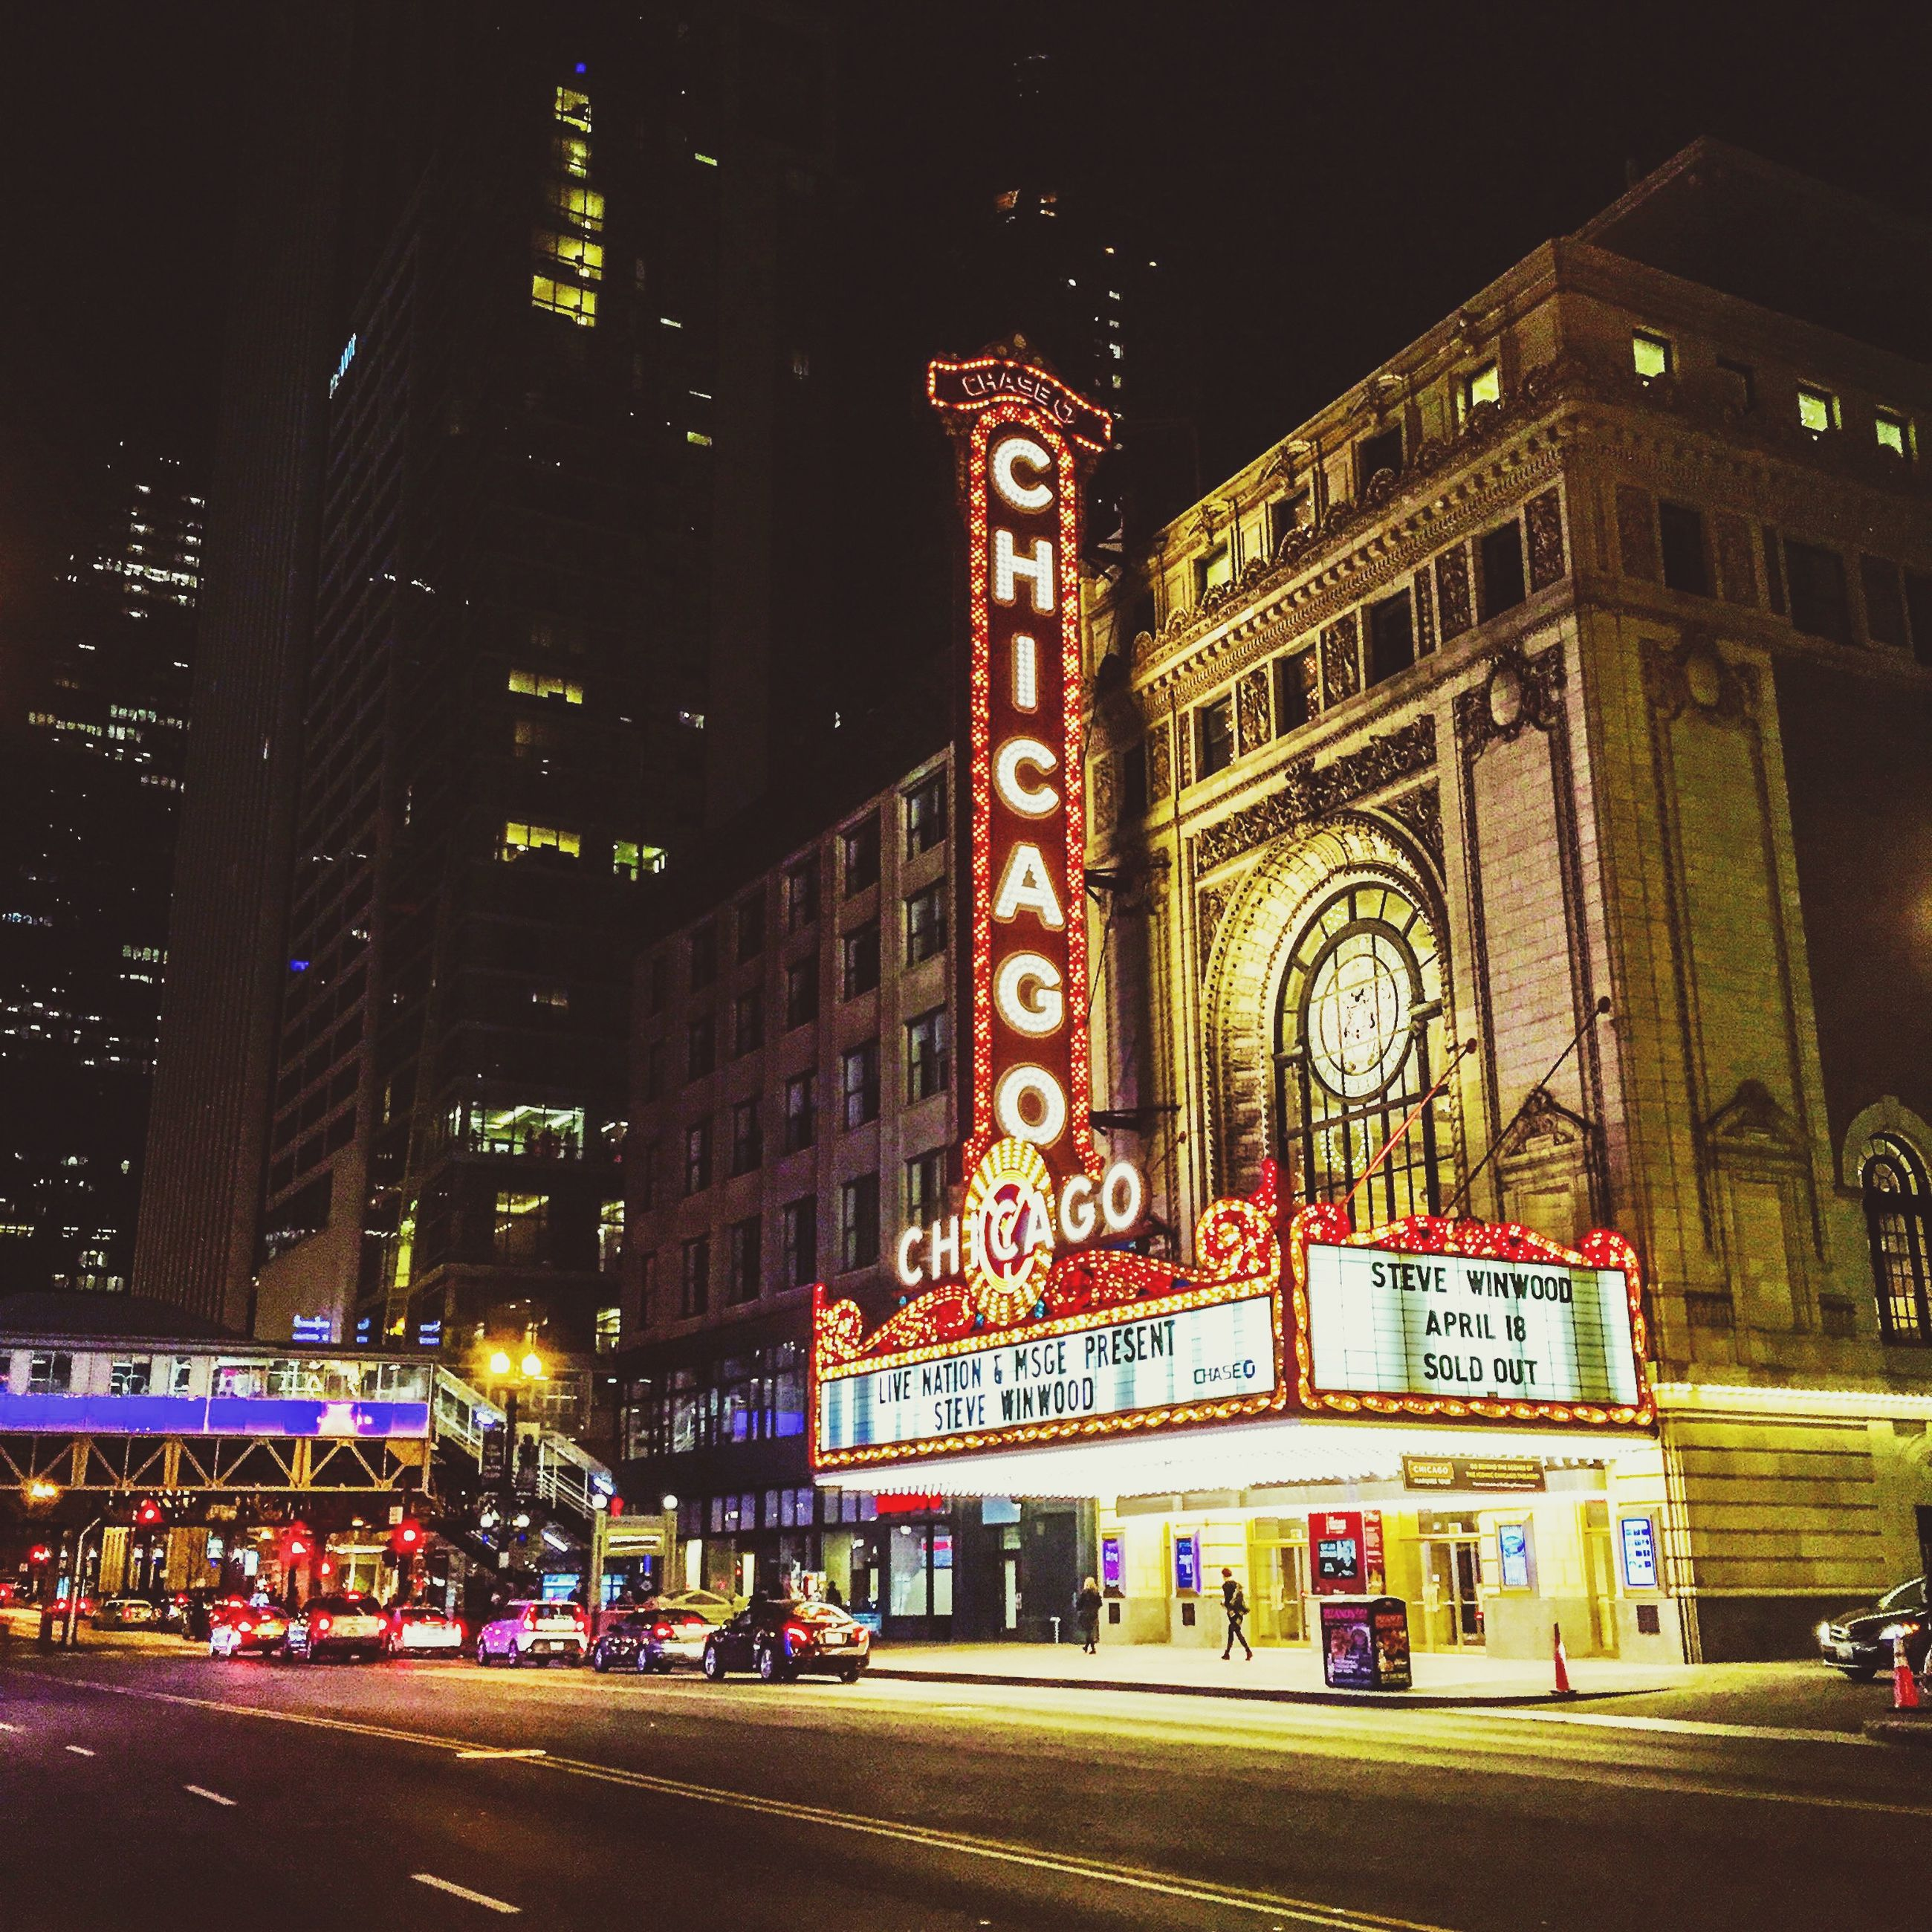 night, architecture, illuminated, building exterior, built structure, city, street, city life, large group of people, text, travel destinations, person, road, men, outdoors, capital cities, travel, western script, city street